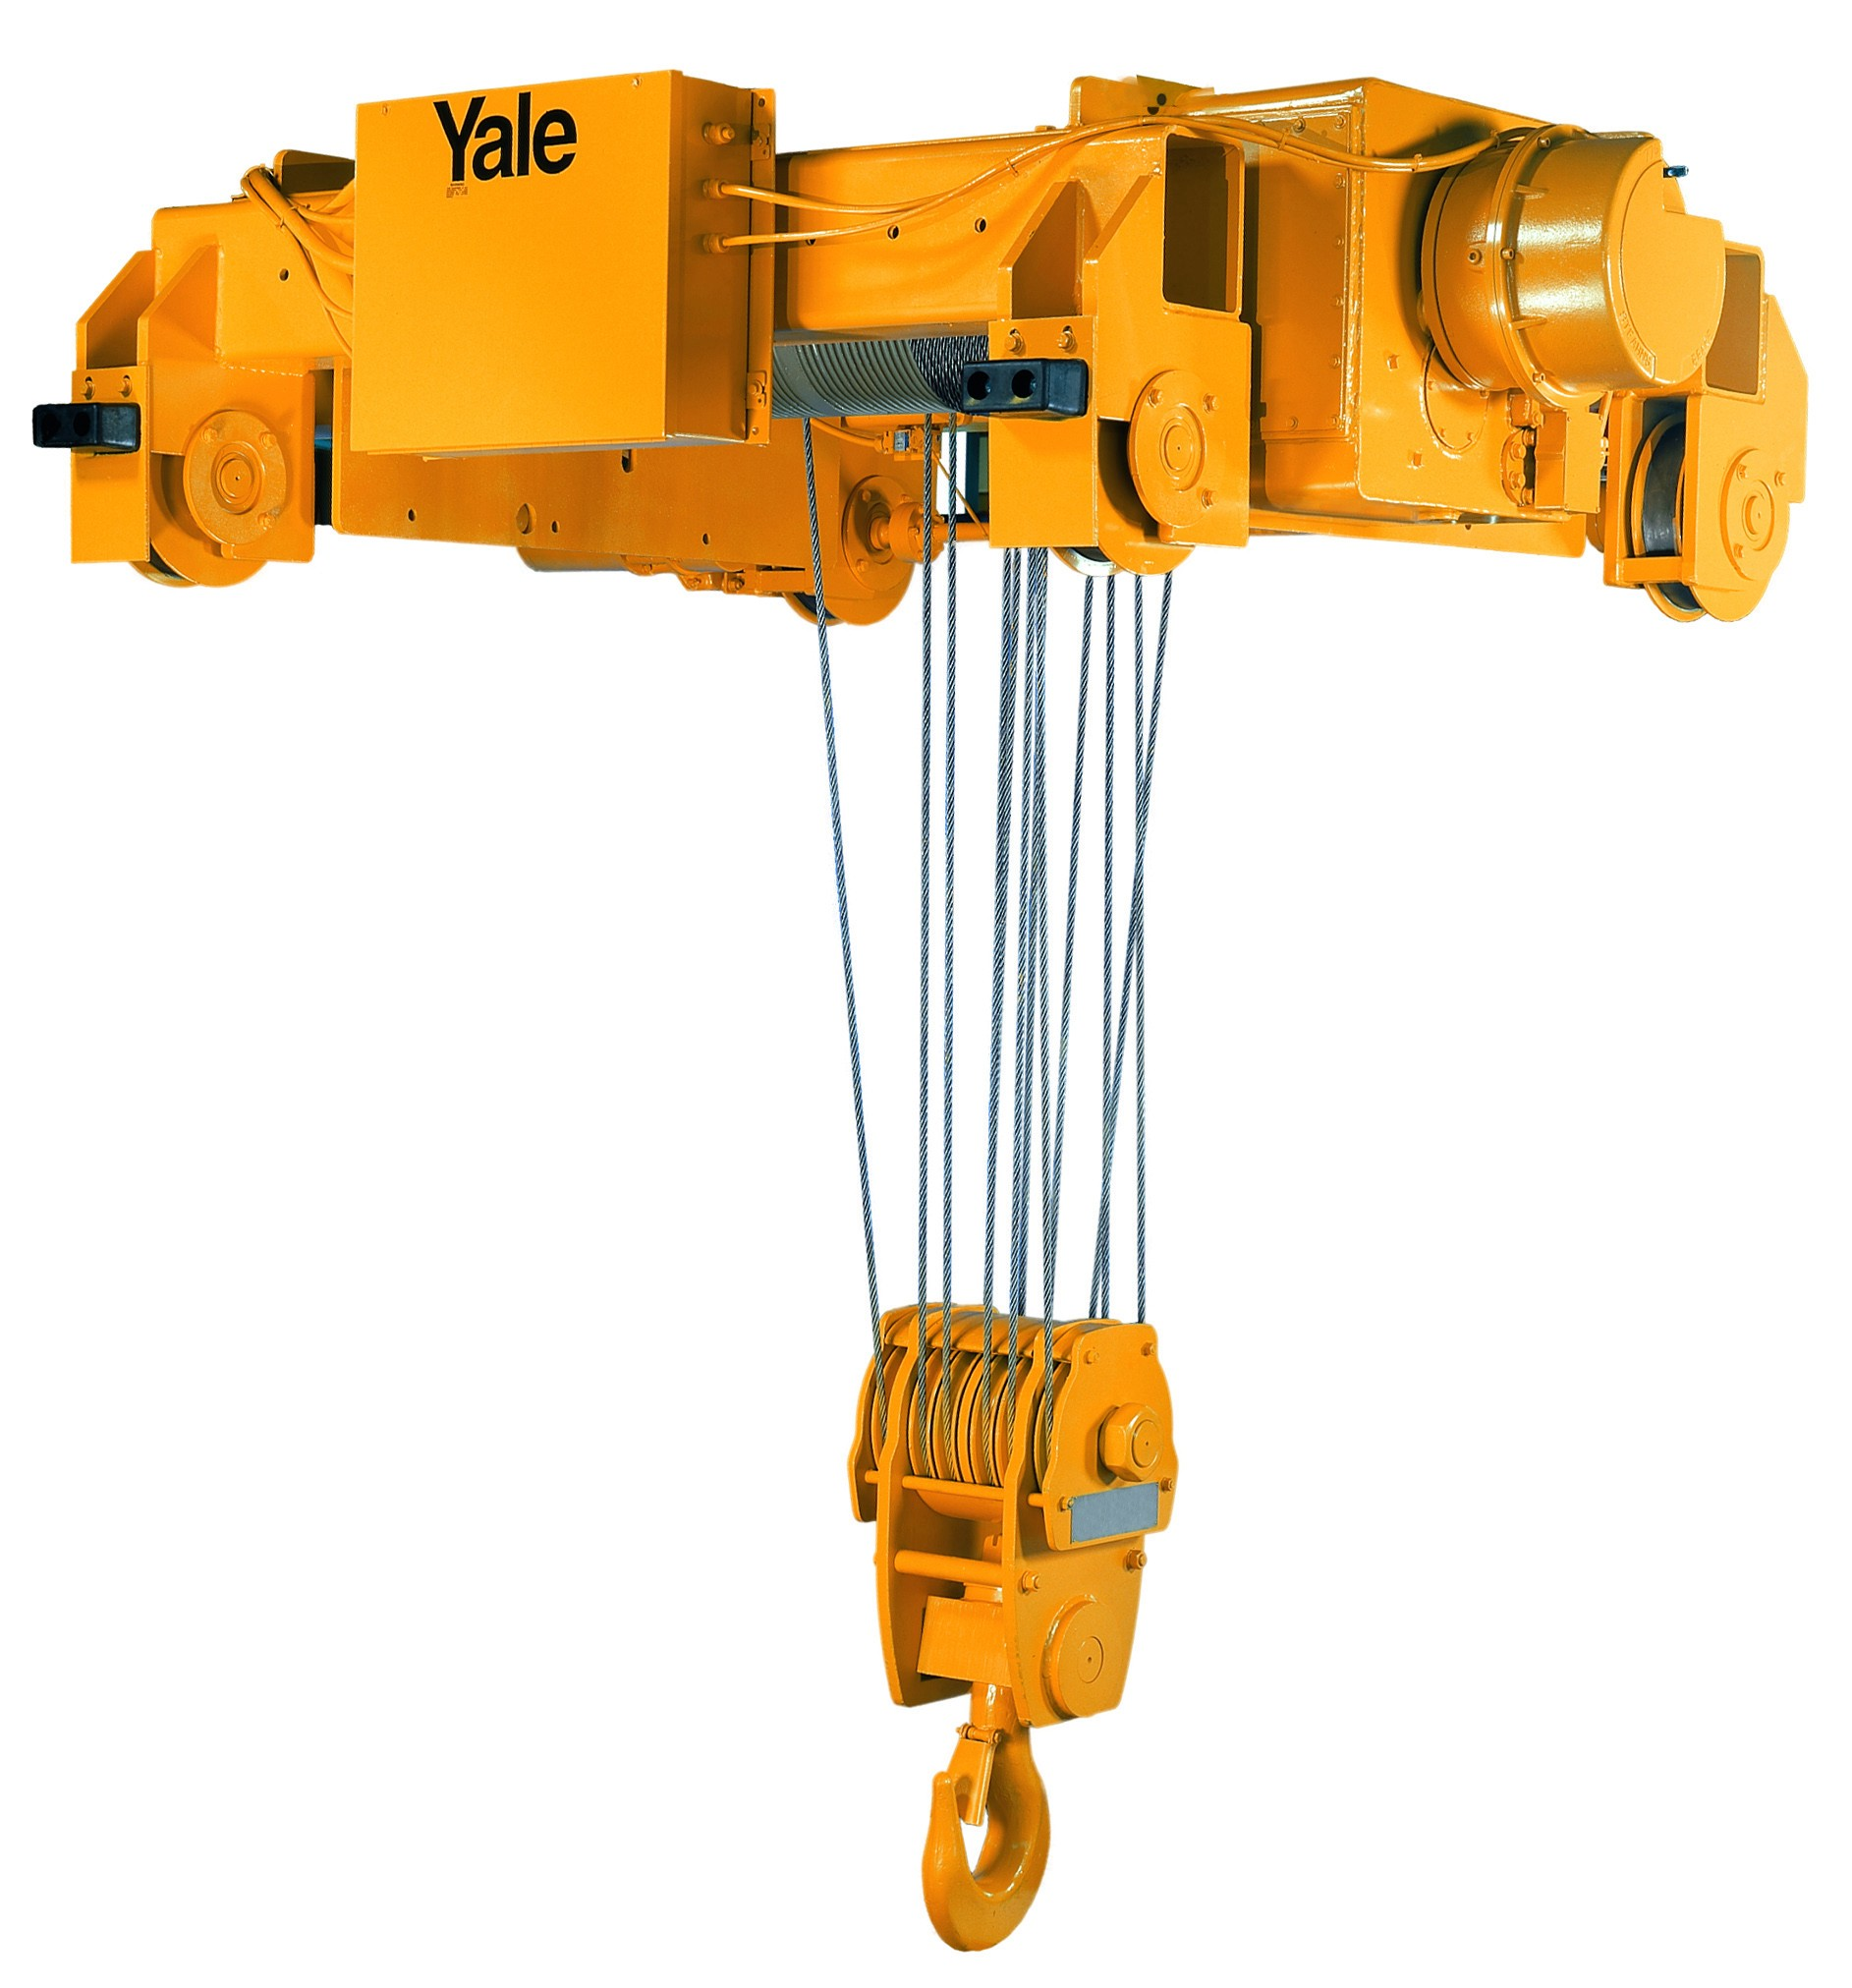 YALE - Cable King 15 Ton Electric Wire Rope Hoist (23fpm & 87' Lift Double Reeve)